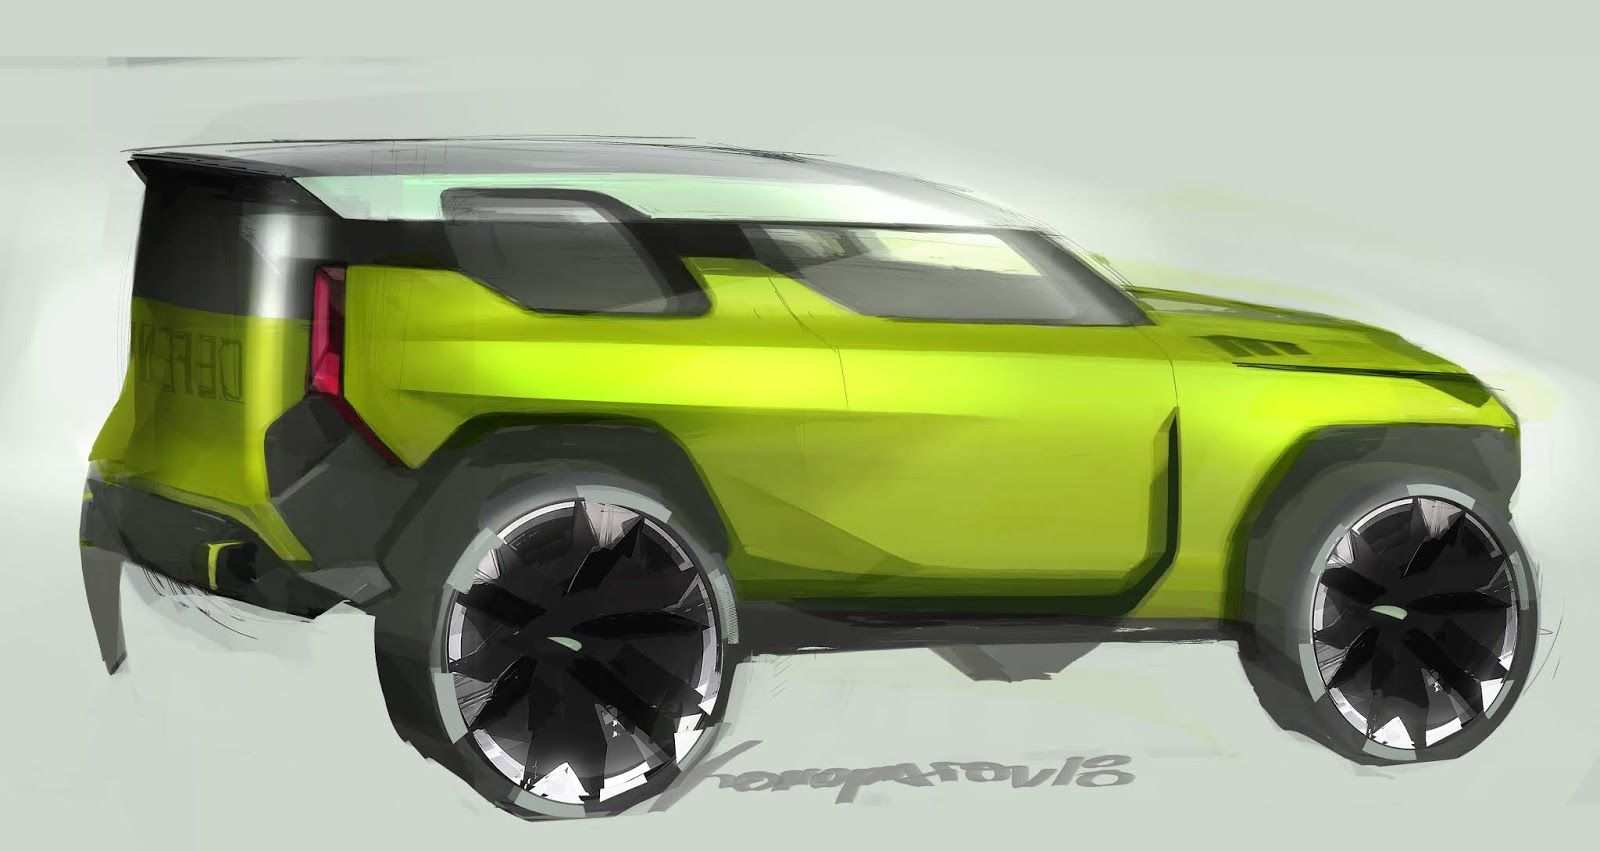 KONOPATOV BLOGSPOT (With images) Truck design